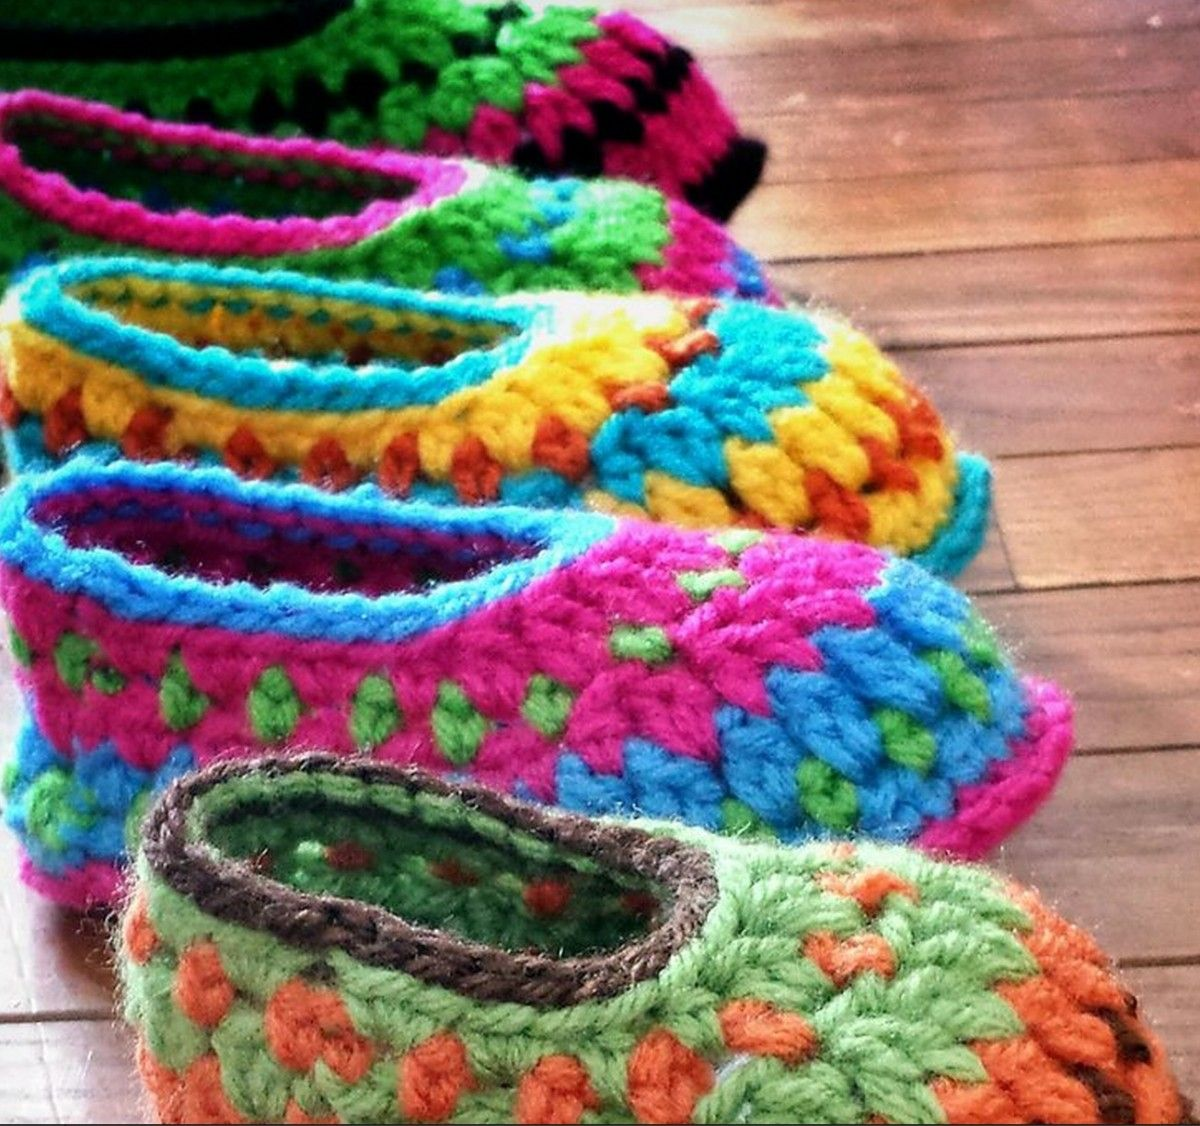 Crochet Galilee Booties How To Make Them Video | Videos, Muster und ...